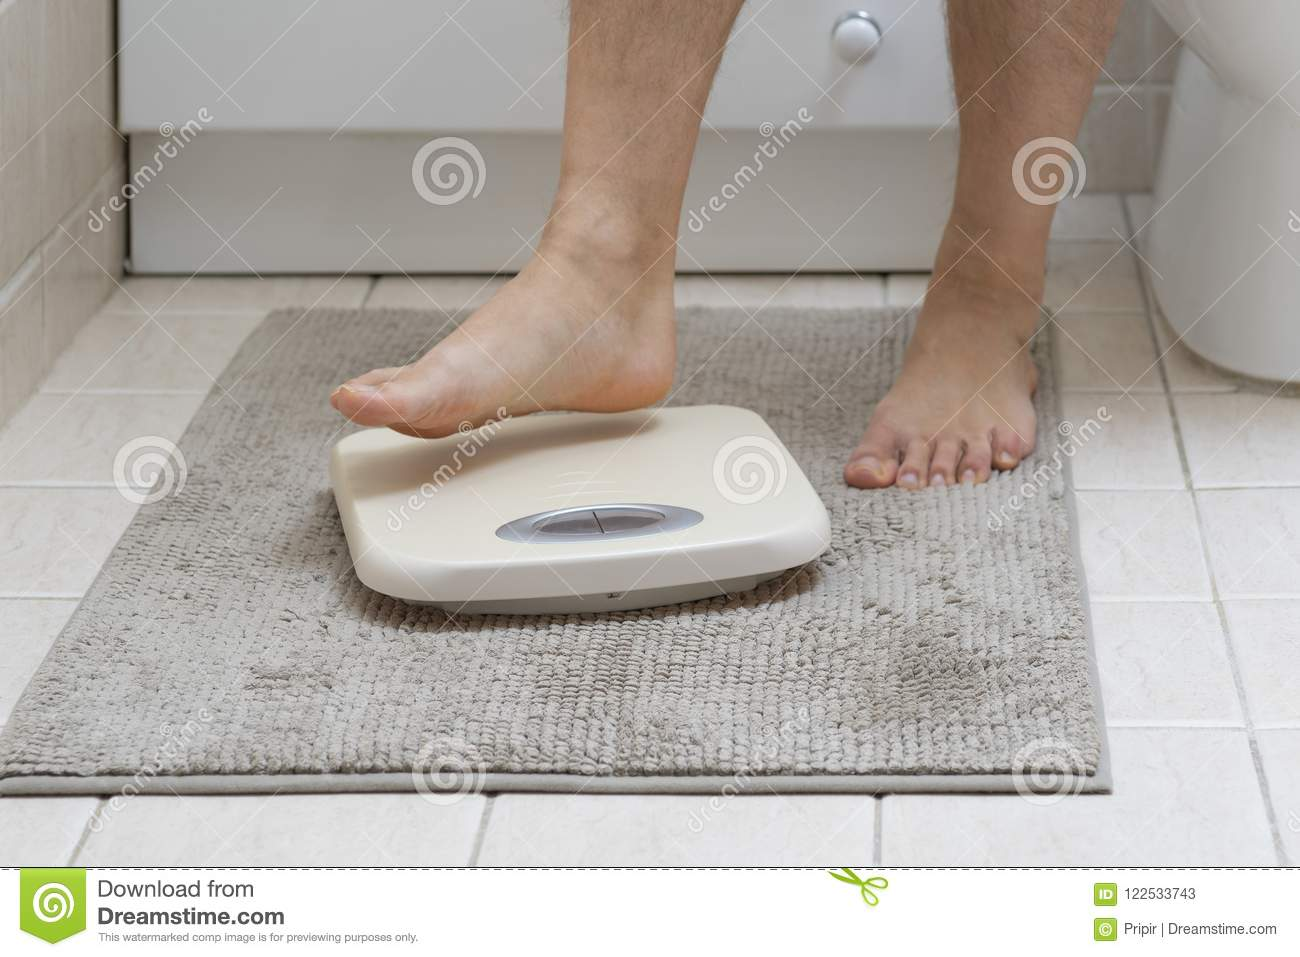 Cropped image of man feet stepping on weigh scale